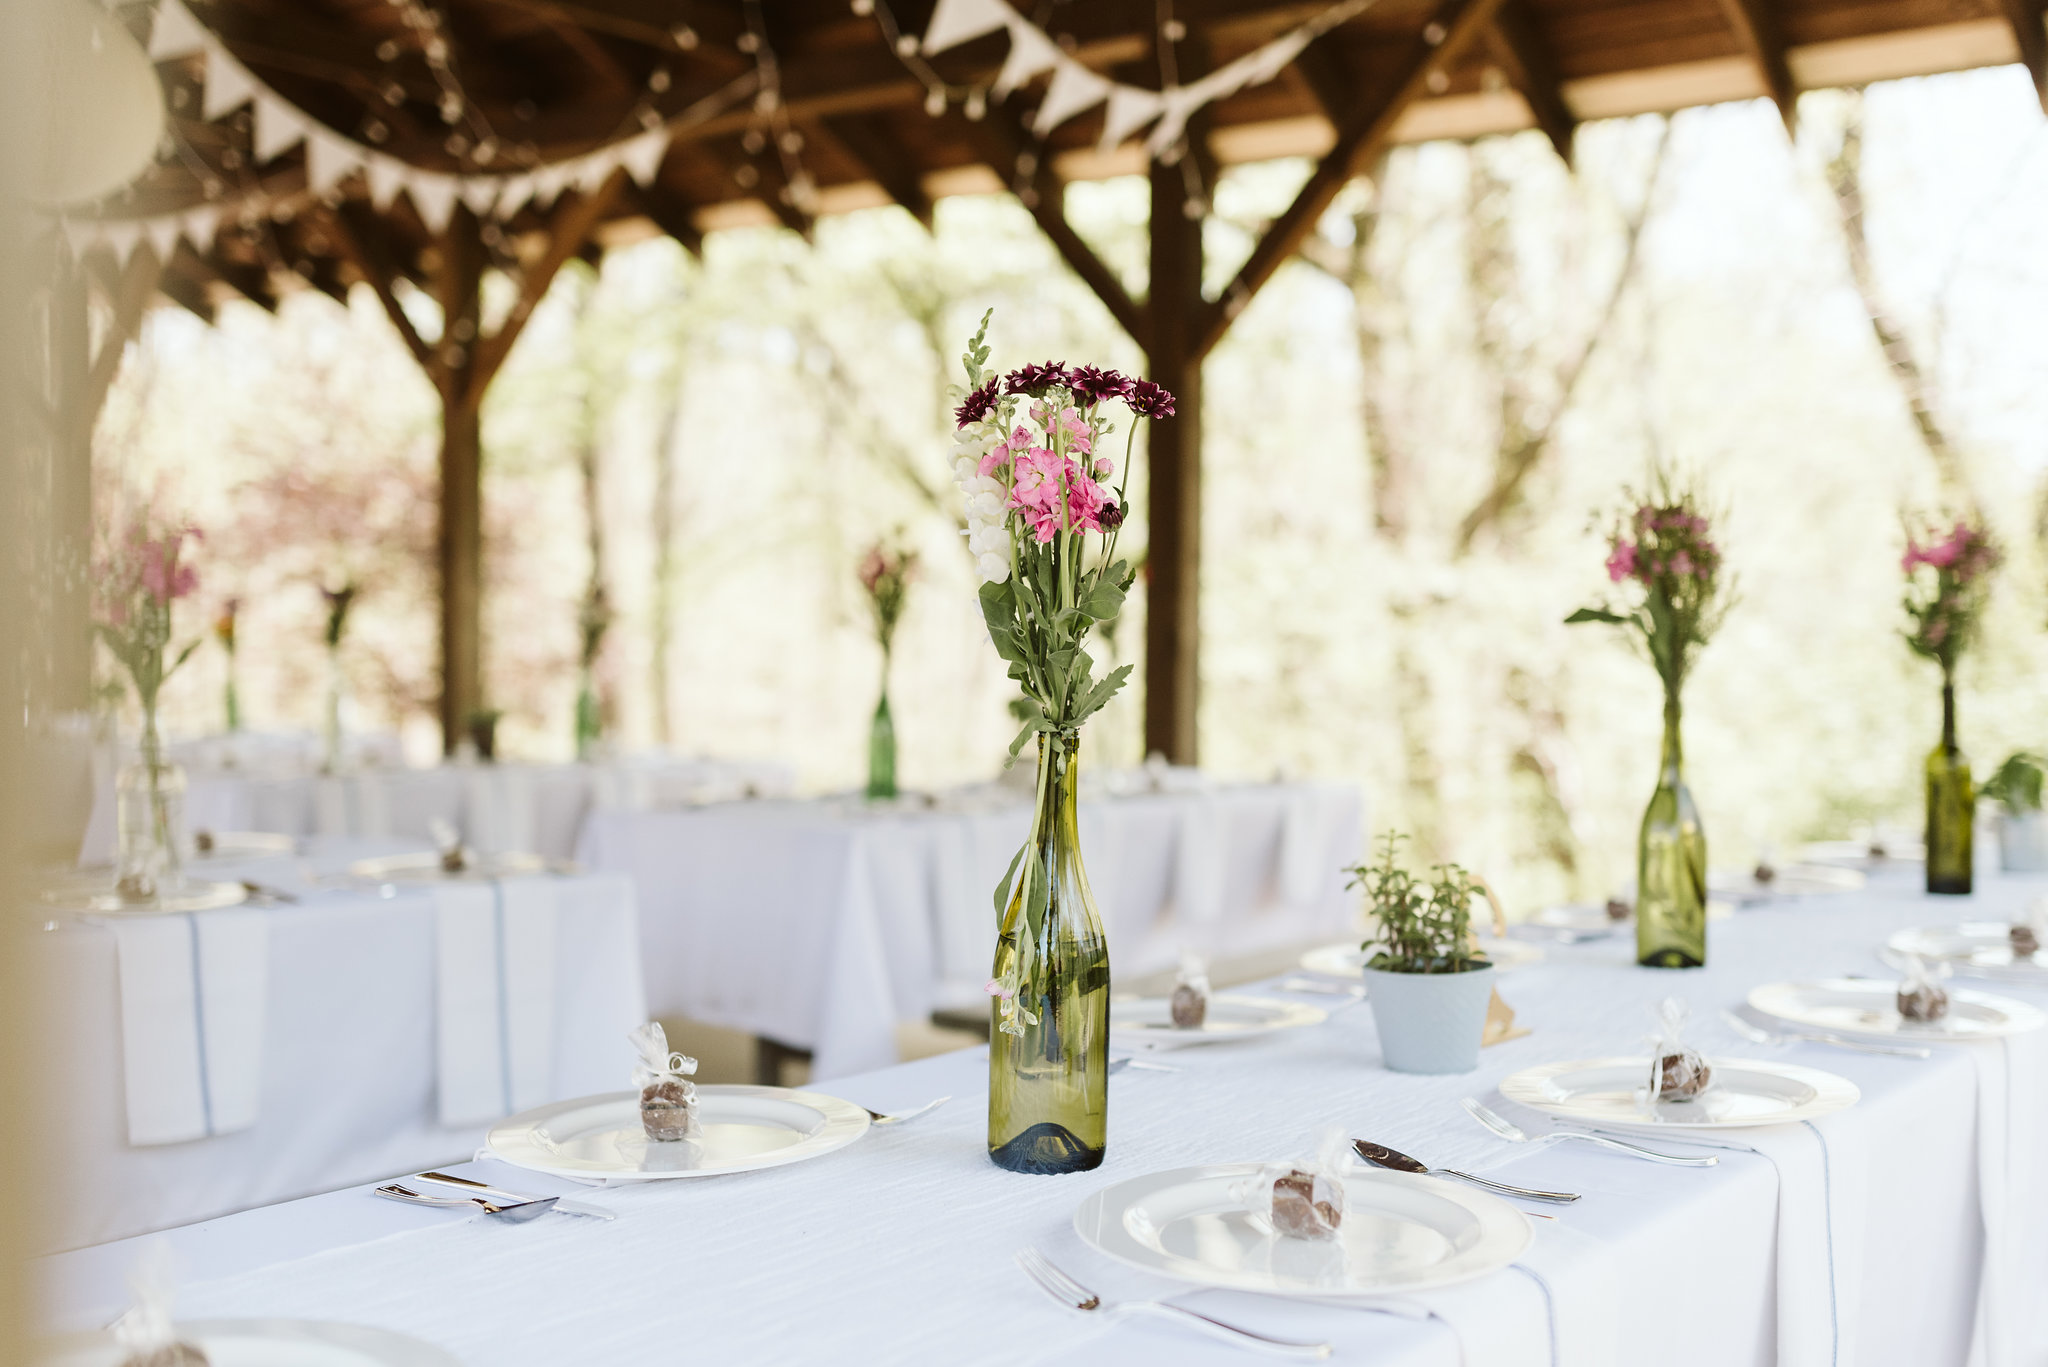 Spring Outdoor Wedding, Park, Baltimore Wedding Photographer, DIY, Classic, Upcycled, Garden Party, Romantic, Wine Bottle Centerpieces, Wildflowers